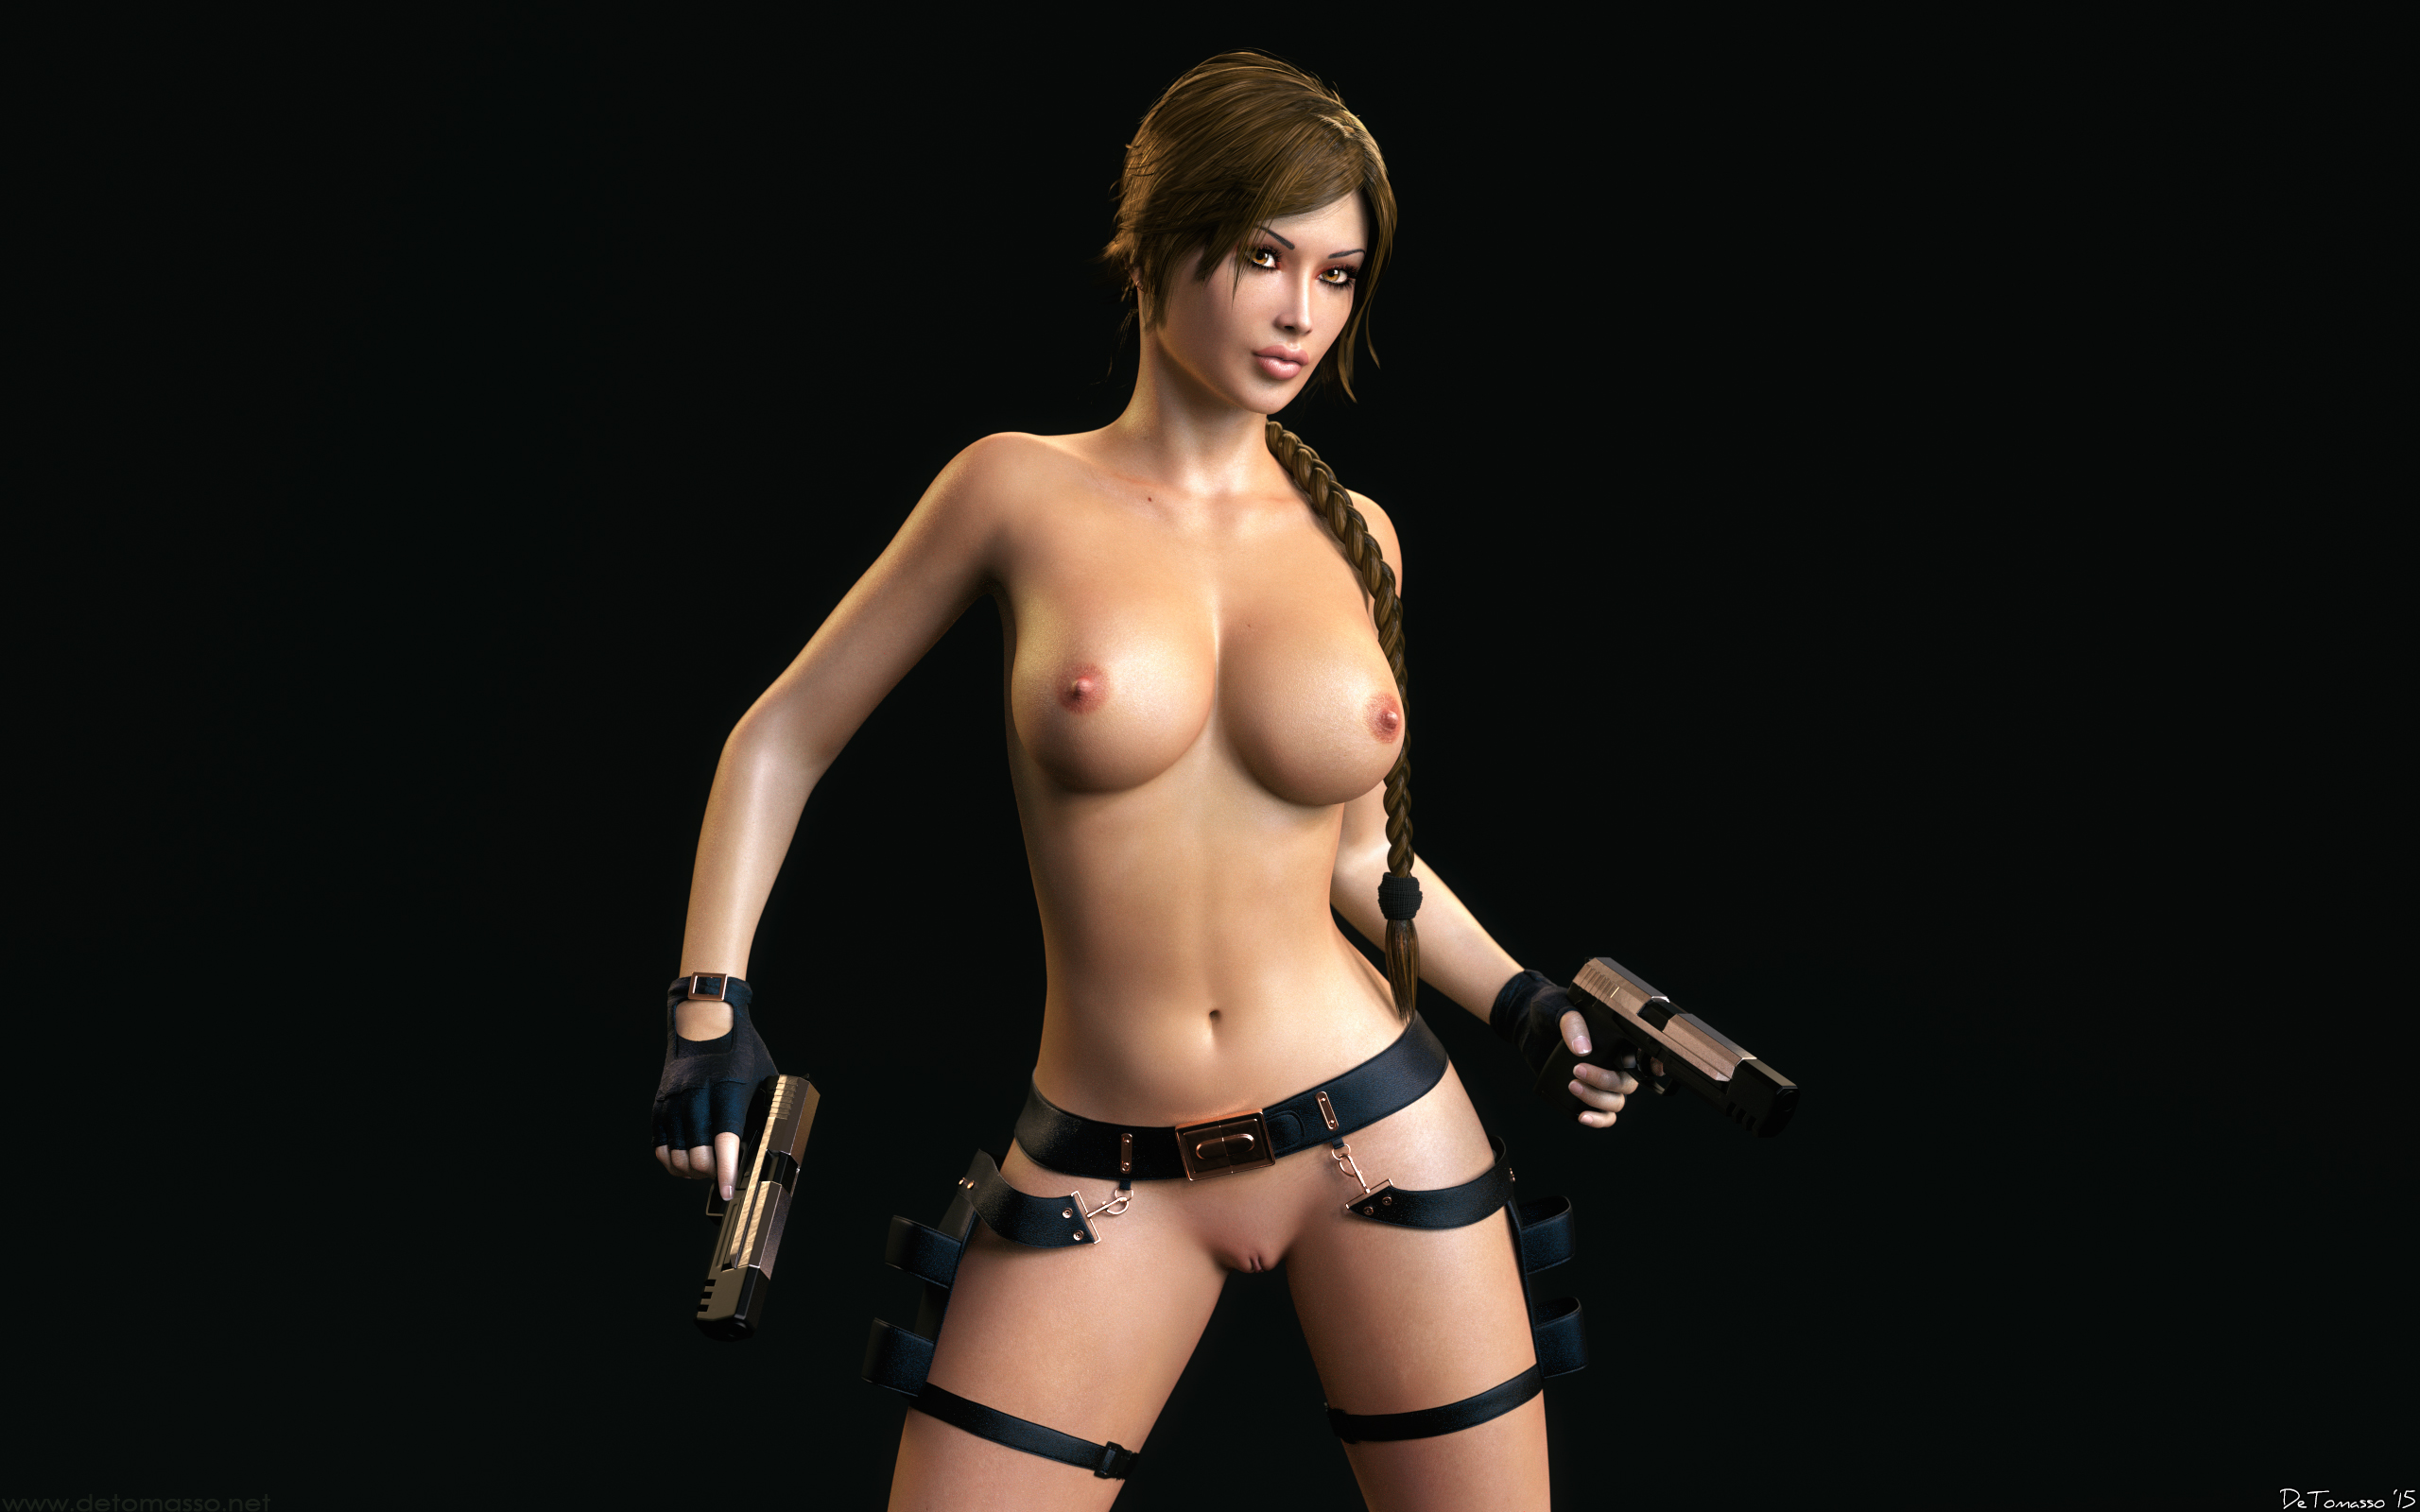 Girls dressed up as lara croft nude anime movies